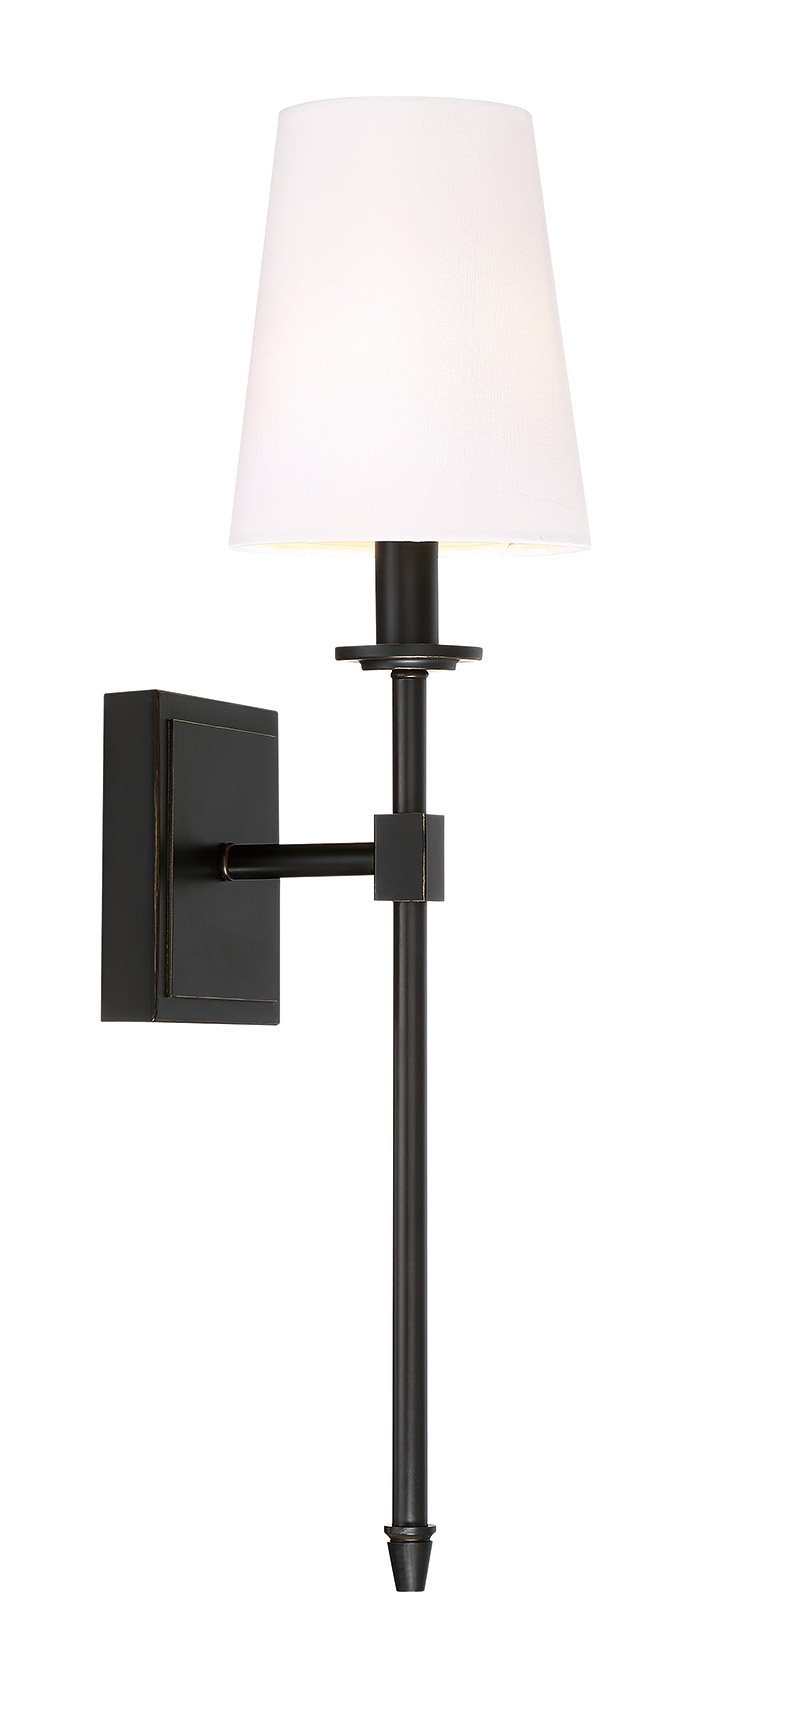 Kira Home Torche 20'' Wall Sconce/Wall Light + Linen Shade, Oil-Rubbed Bronze Finish